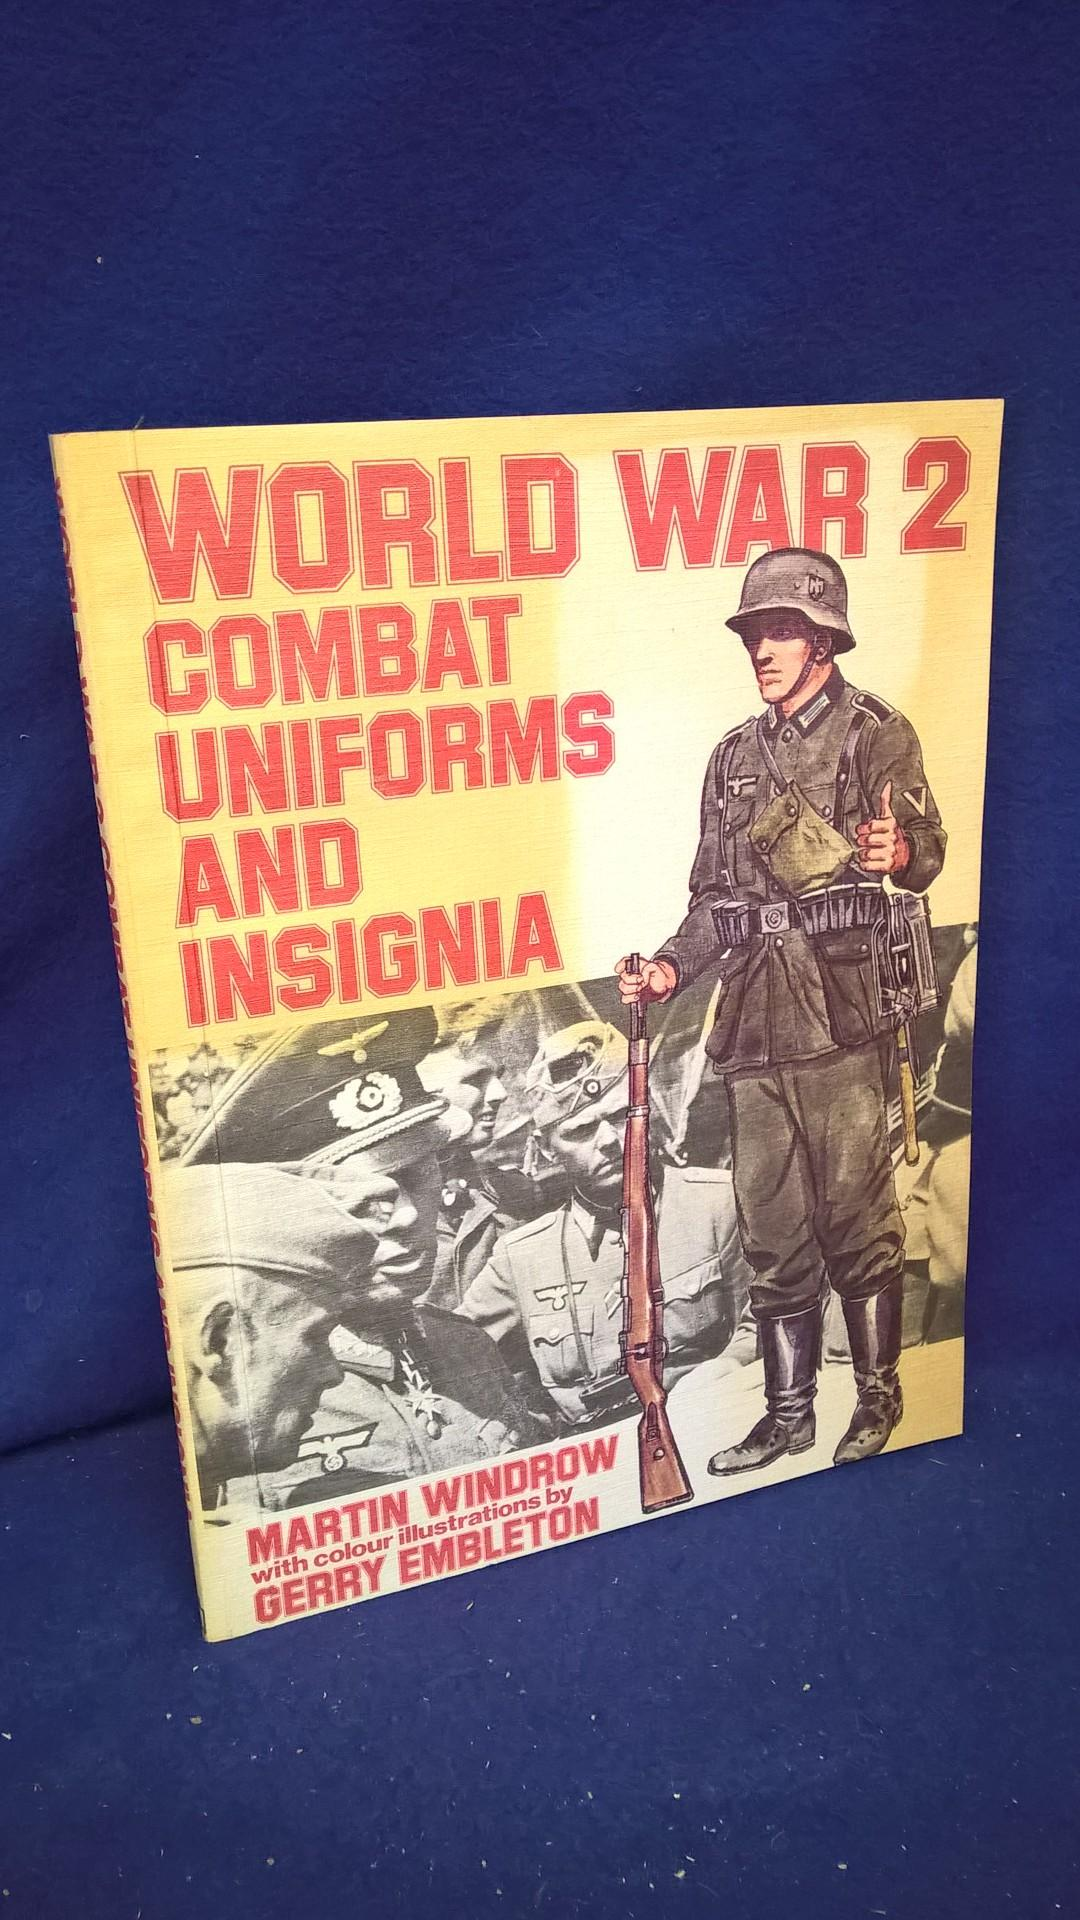 World War 2 Combat Uniforms and Insignia